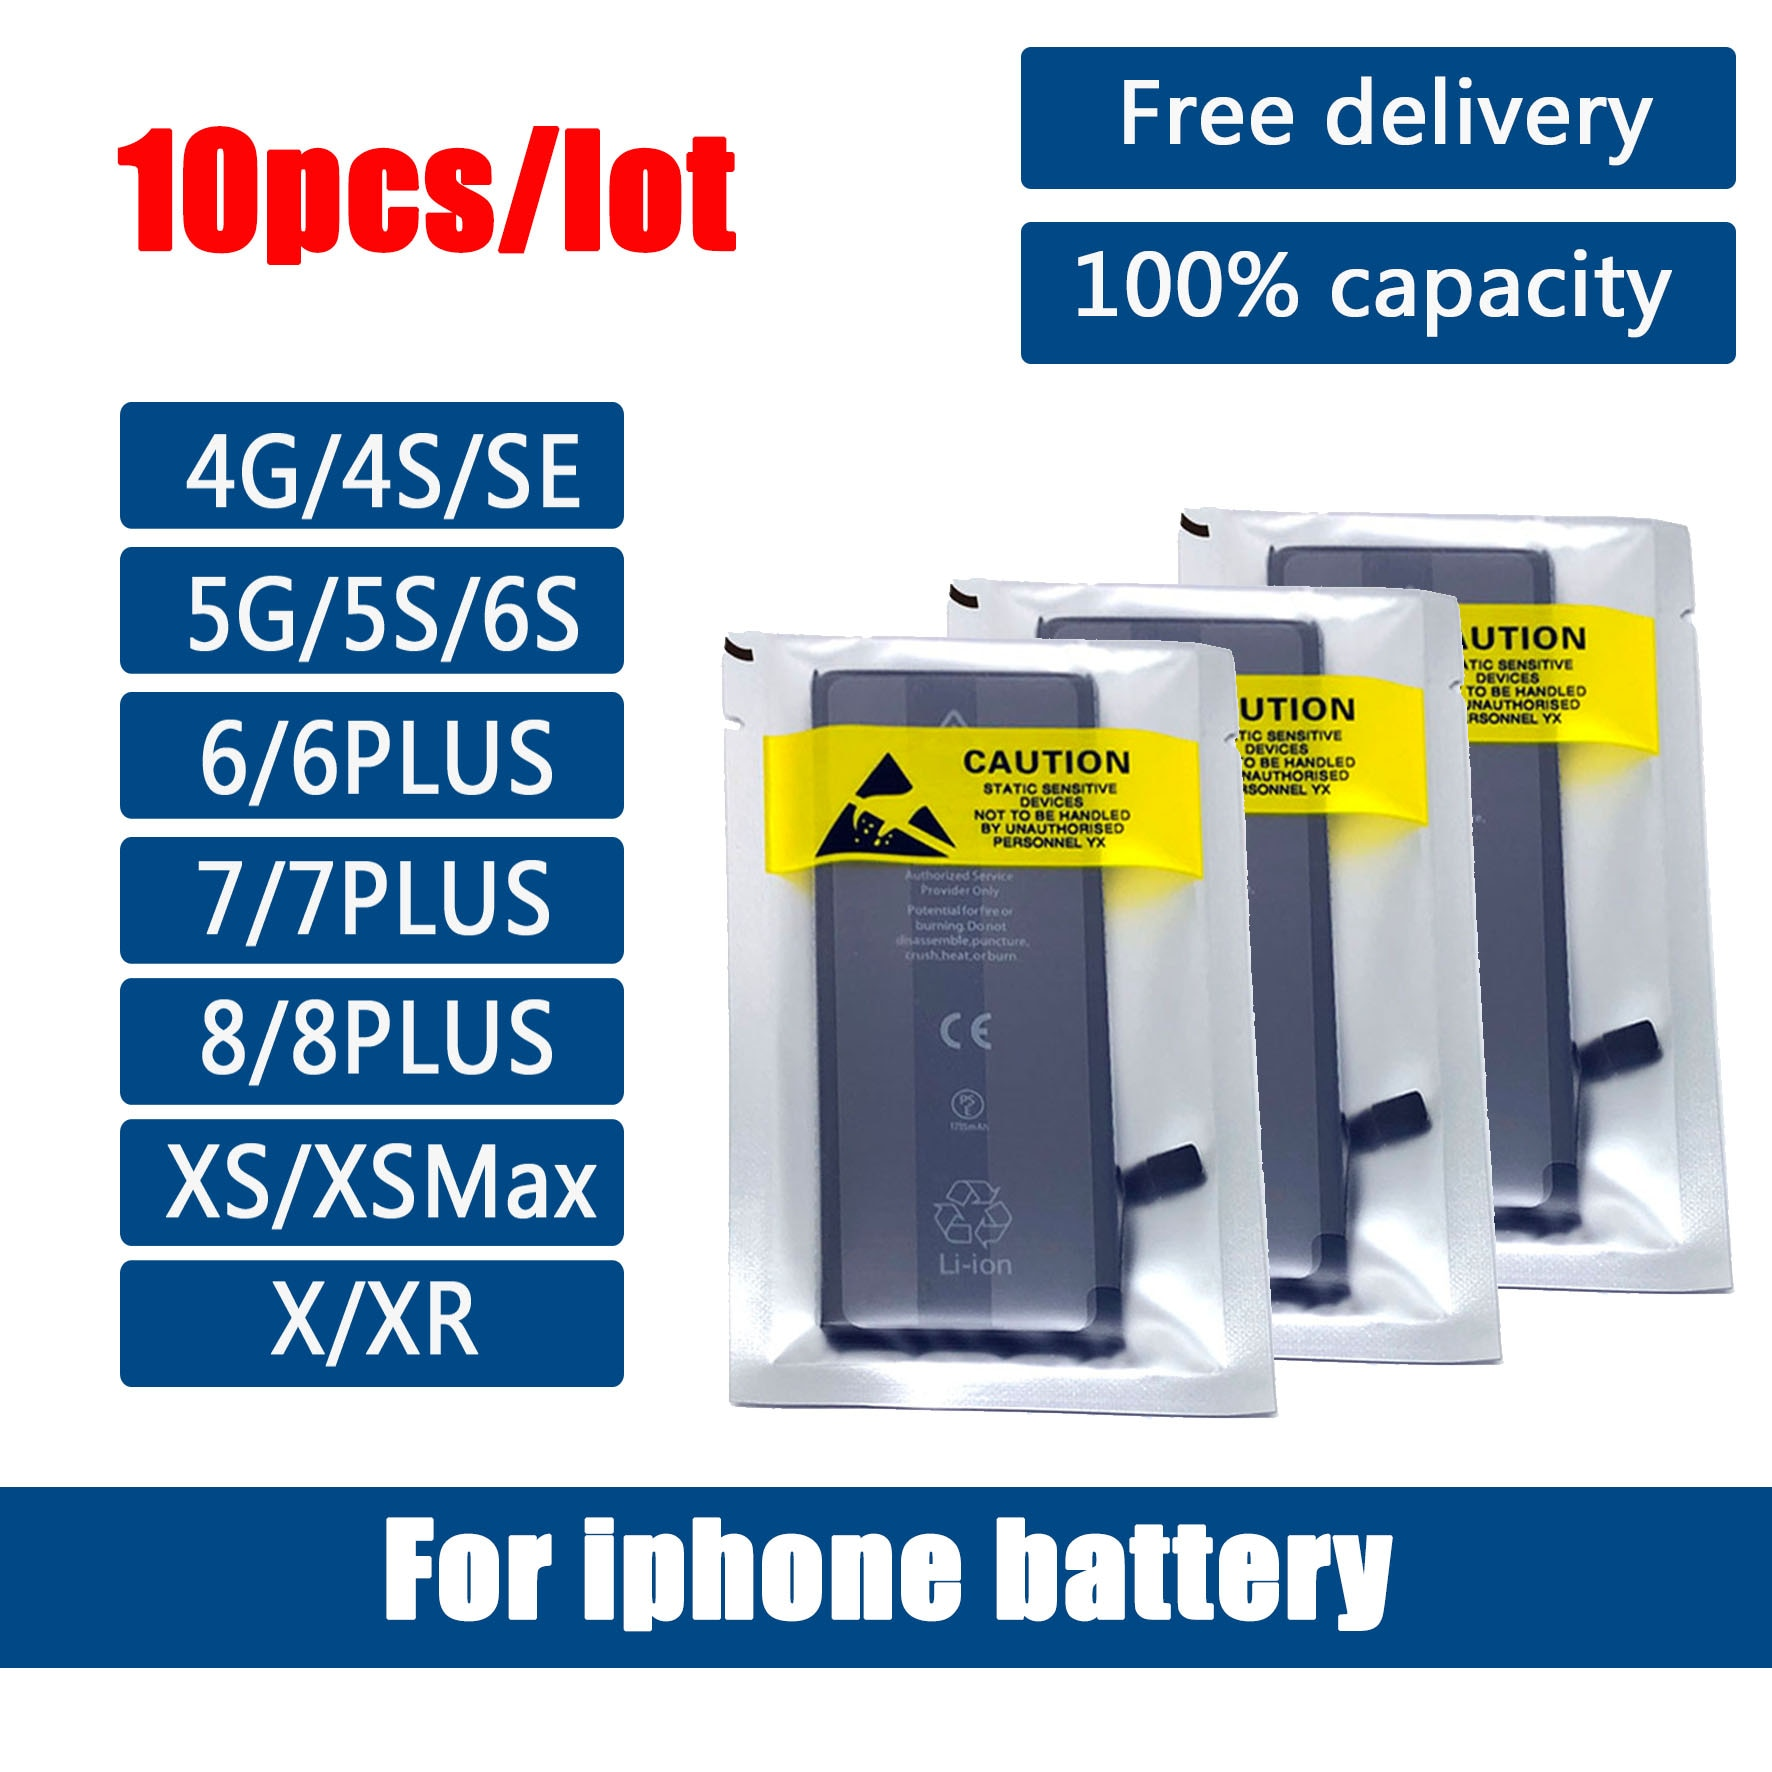 10pcs/Lot 0 cycle seal oem mobile phone battery pack for iPhone 4 4S 5 5S 5C SE 6 6S 7 8 Plus X XR XS Max battery